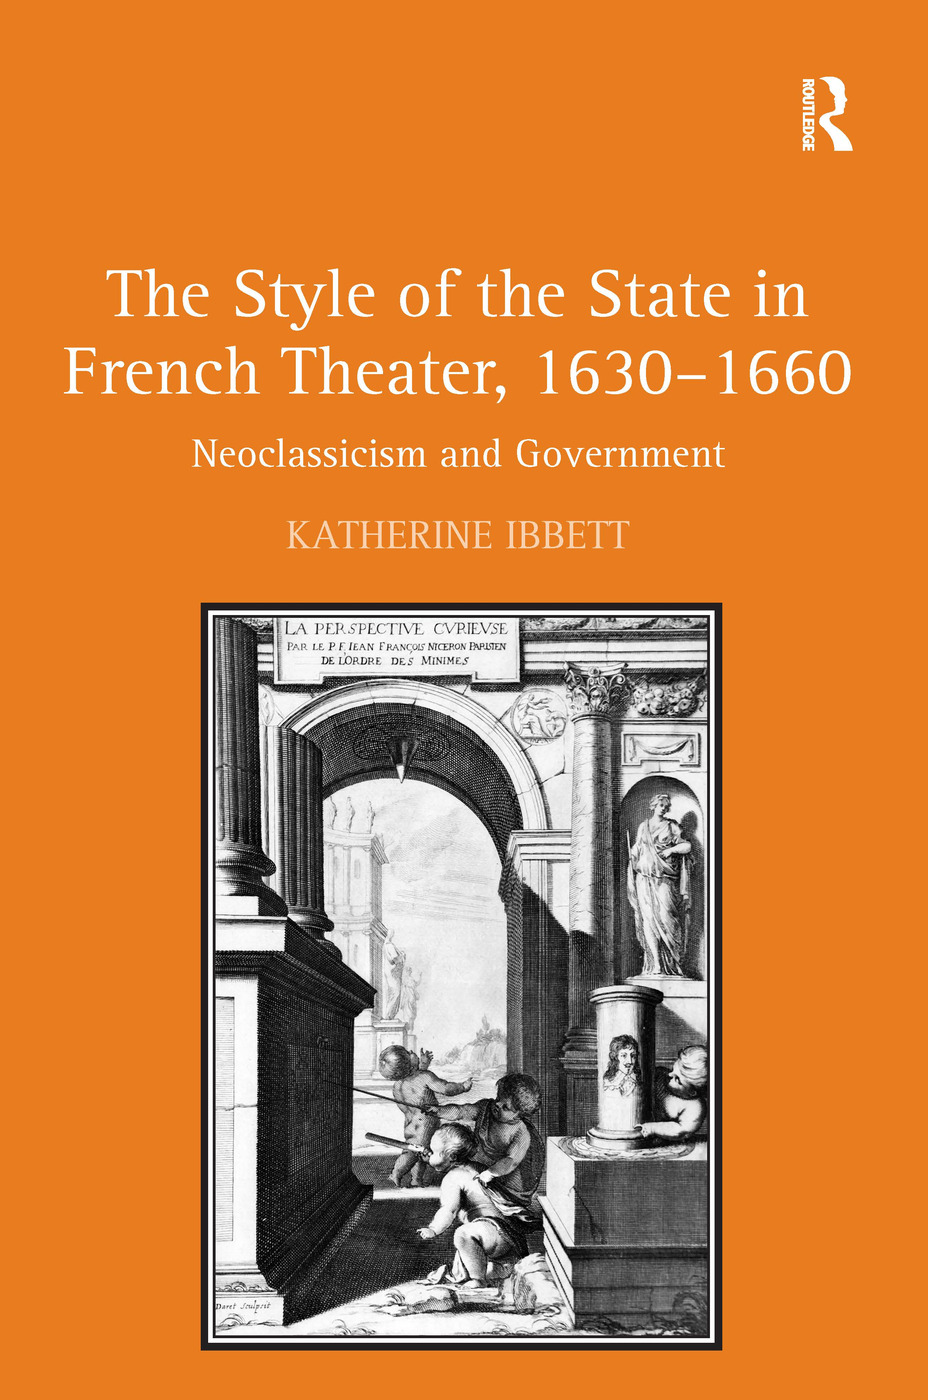 Conservation, Corneille, and the Question of the Colonial Governor